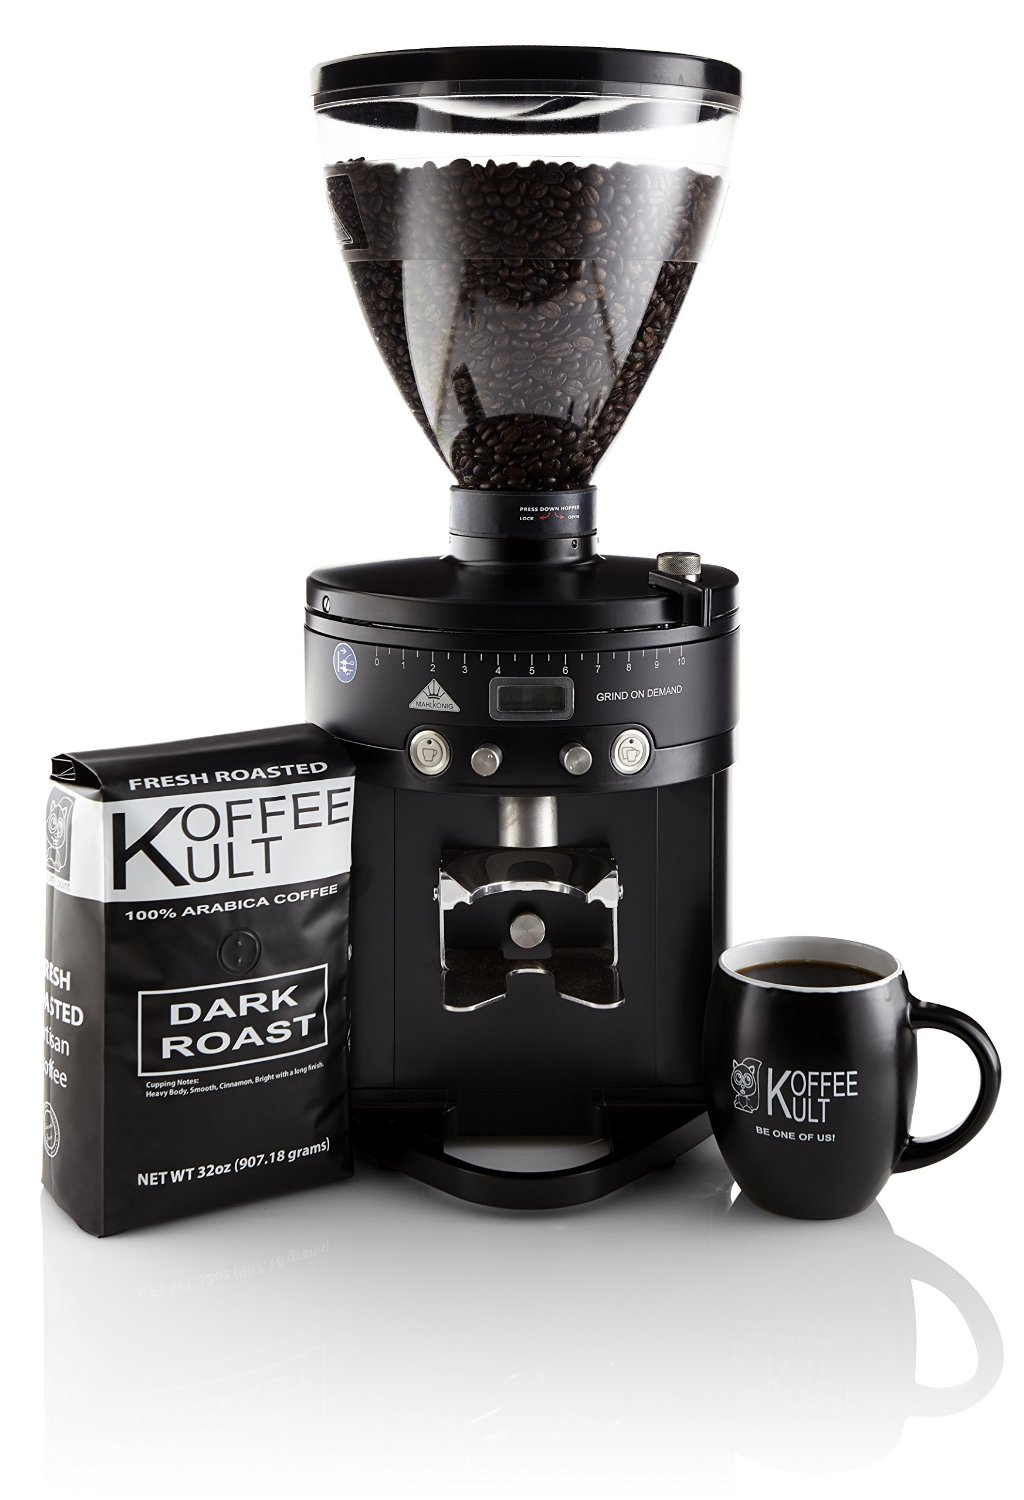 Koffee Kult Highest Delicious Organically